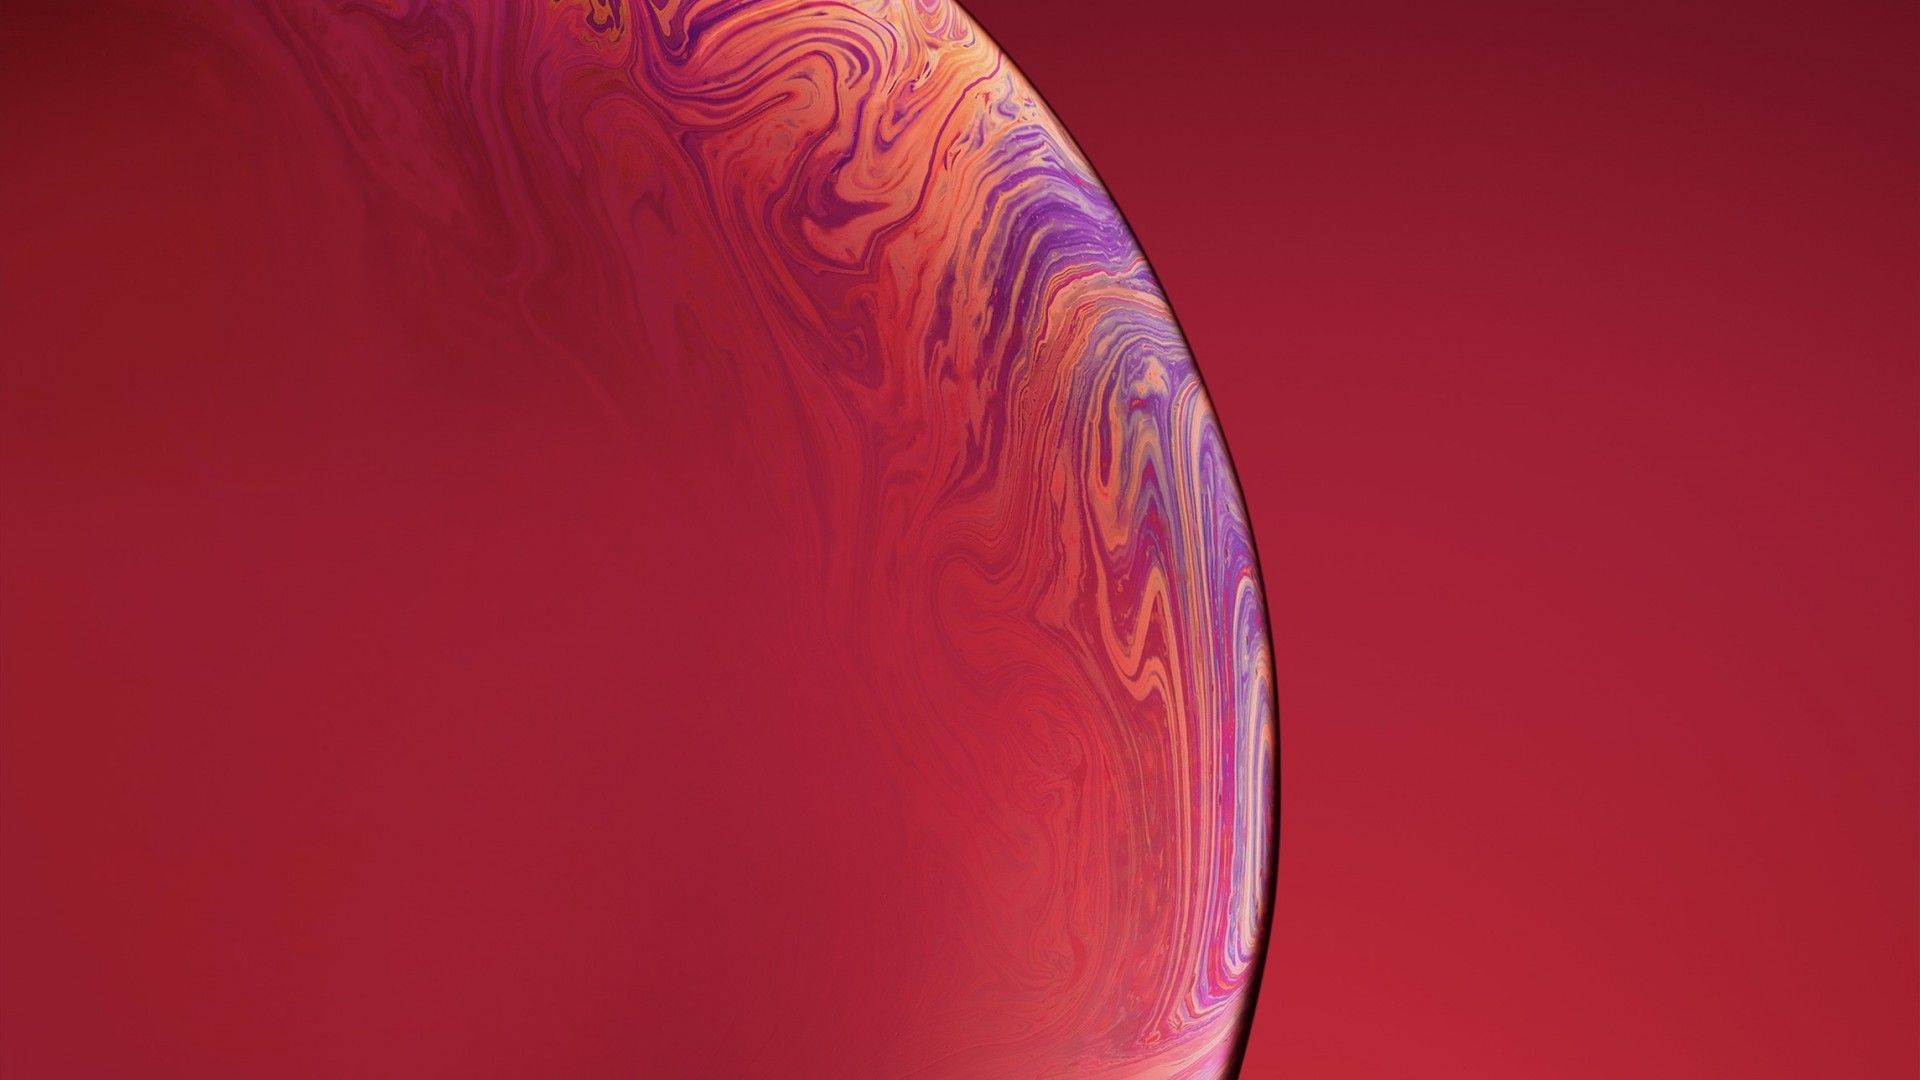 خلفيات ايفون iphone xr & xs wallpaper hd Iphone